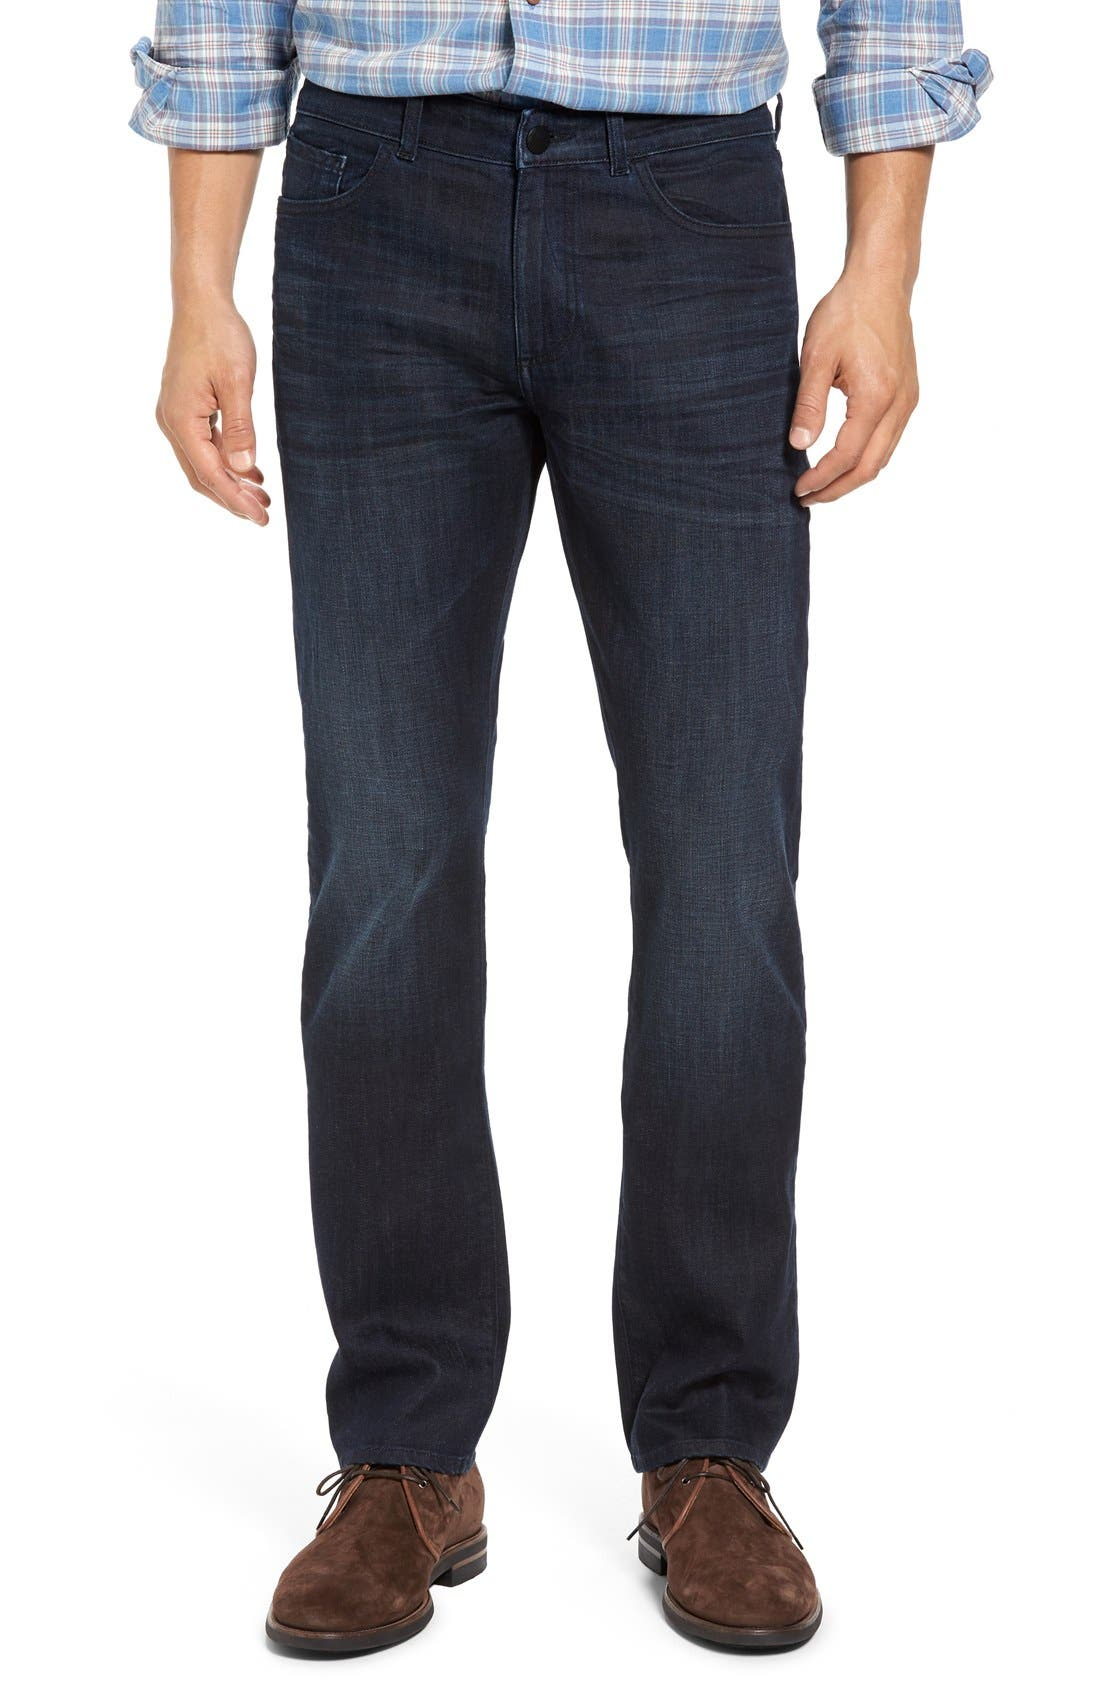 Russell Slim Straight Fit Jeans,                             Main thumbnail 1, color,                             405